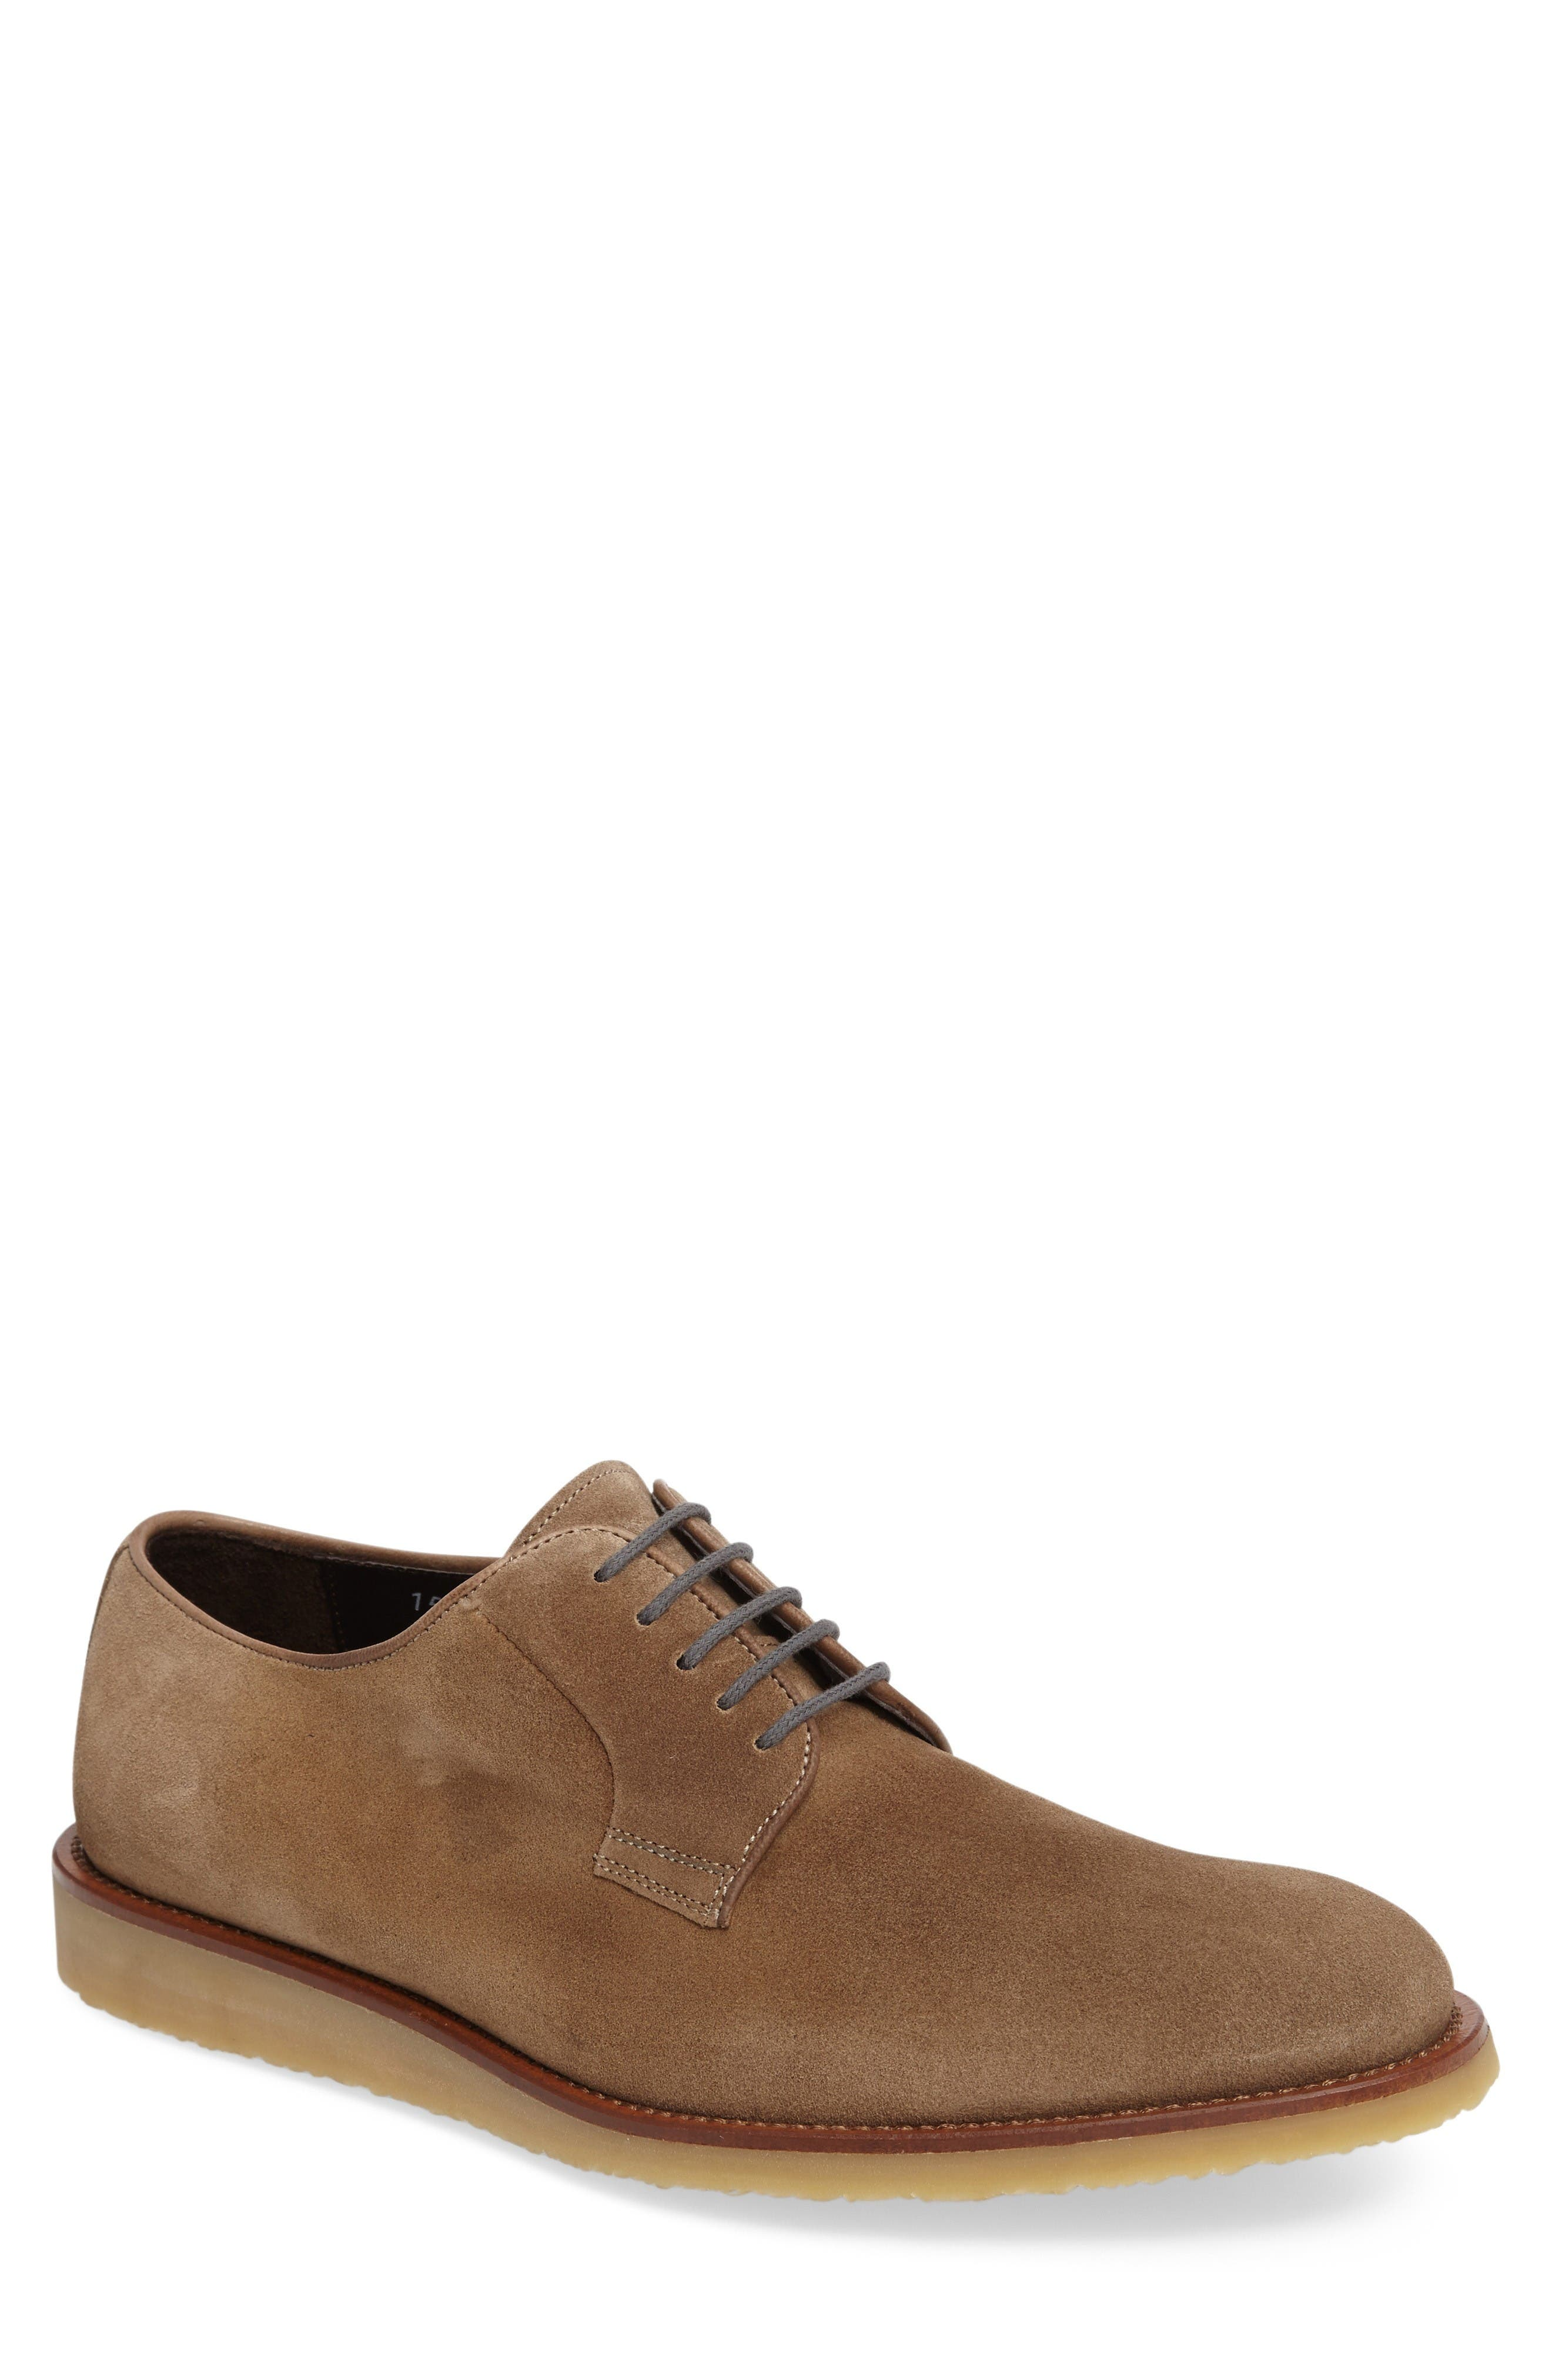 Alternate Image 1 Selected - To Boot New York Jack Buck Shoe (Men)